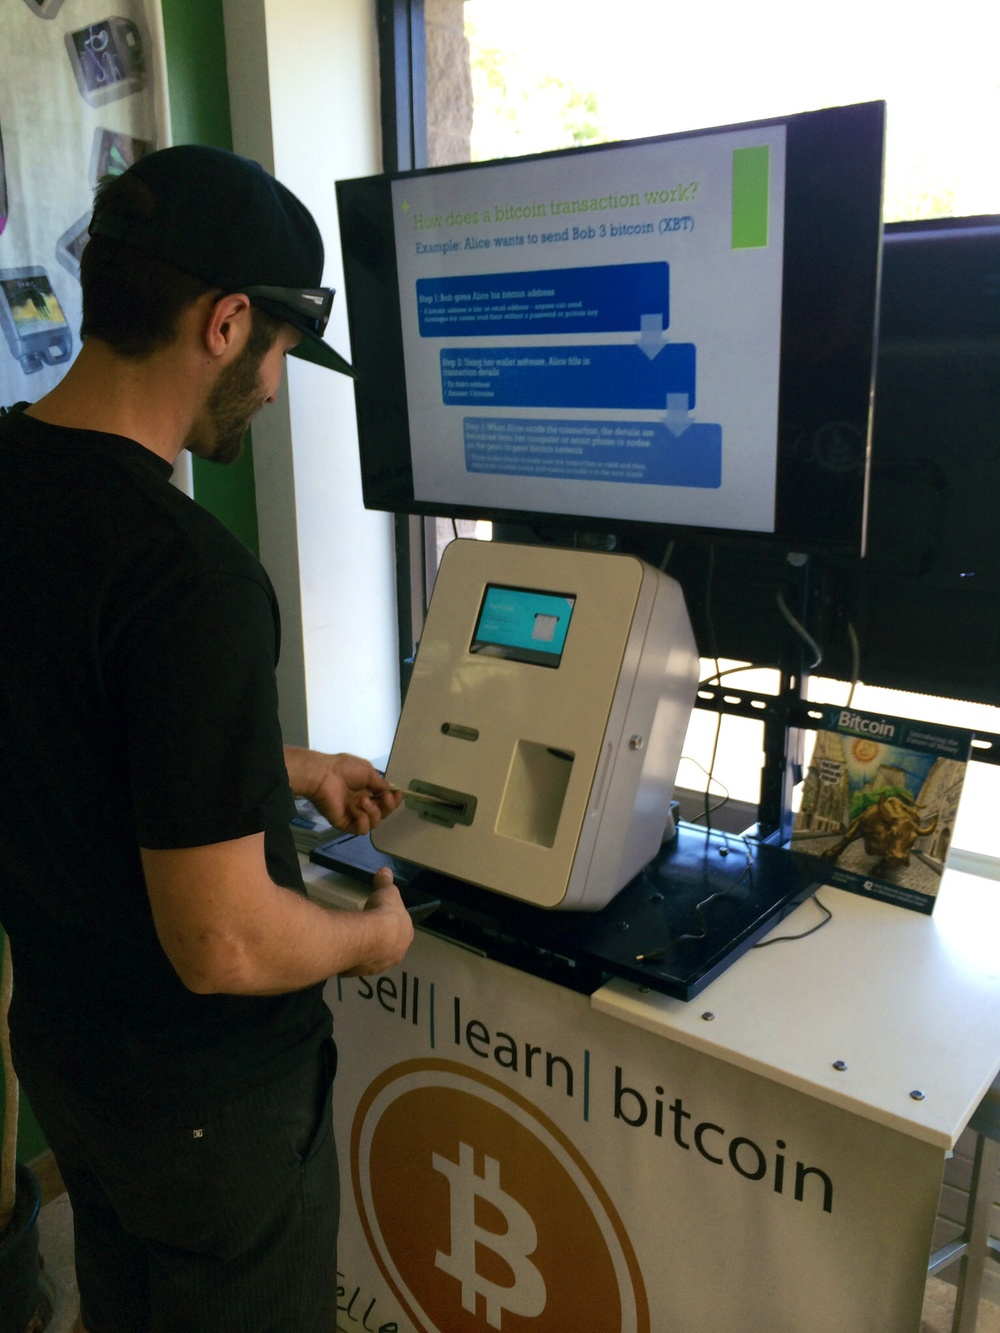 XBTeller Bitcoin ATM inside The Big Tomato